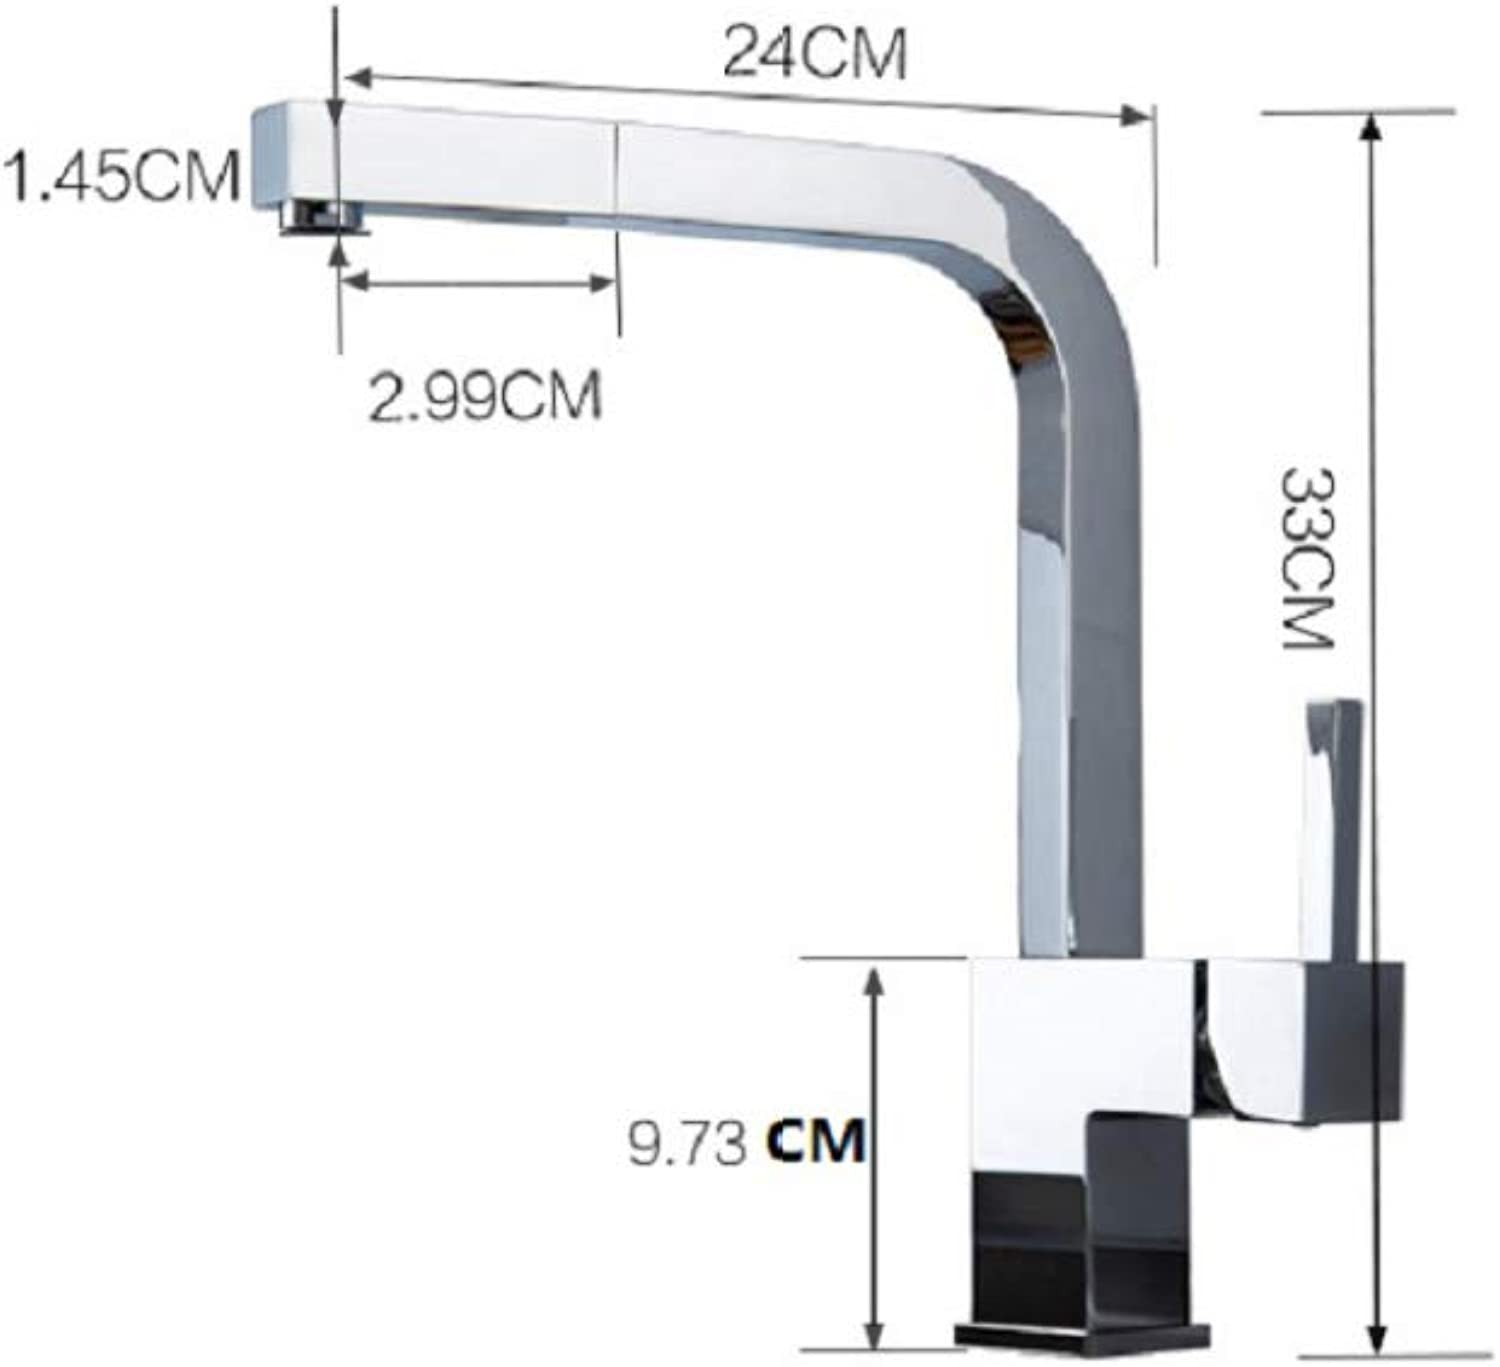 Water tap Household copper can pull the redating faucet, kitchen sink hot and cold water faucet,Silver,Cm